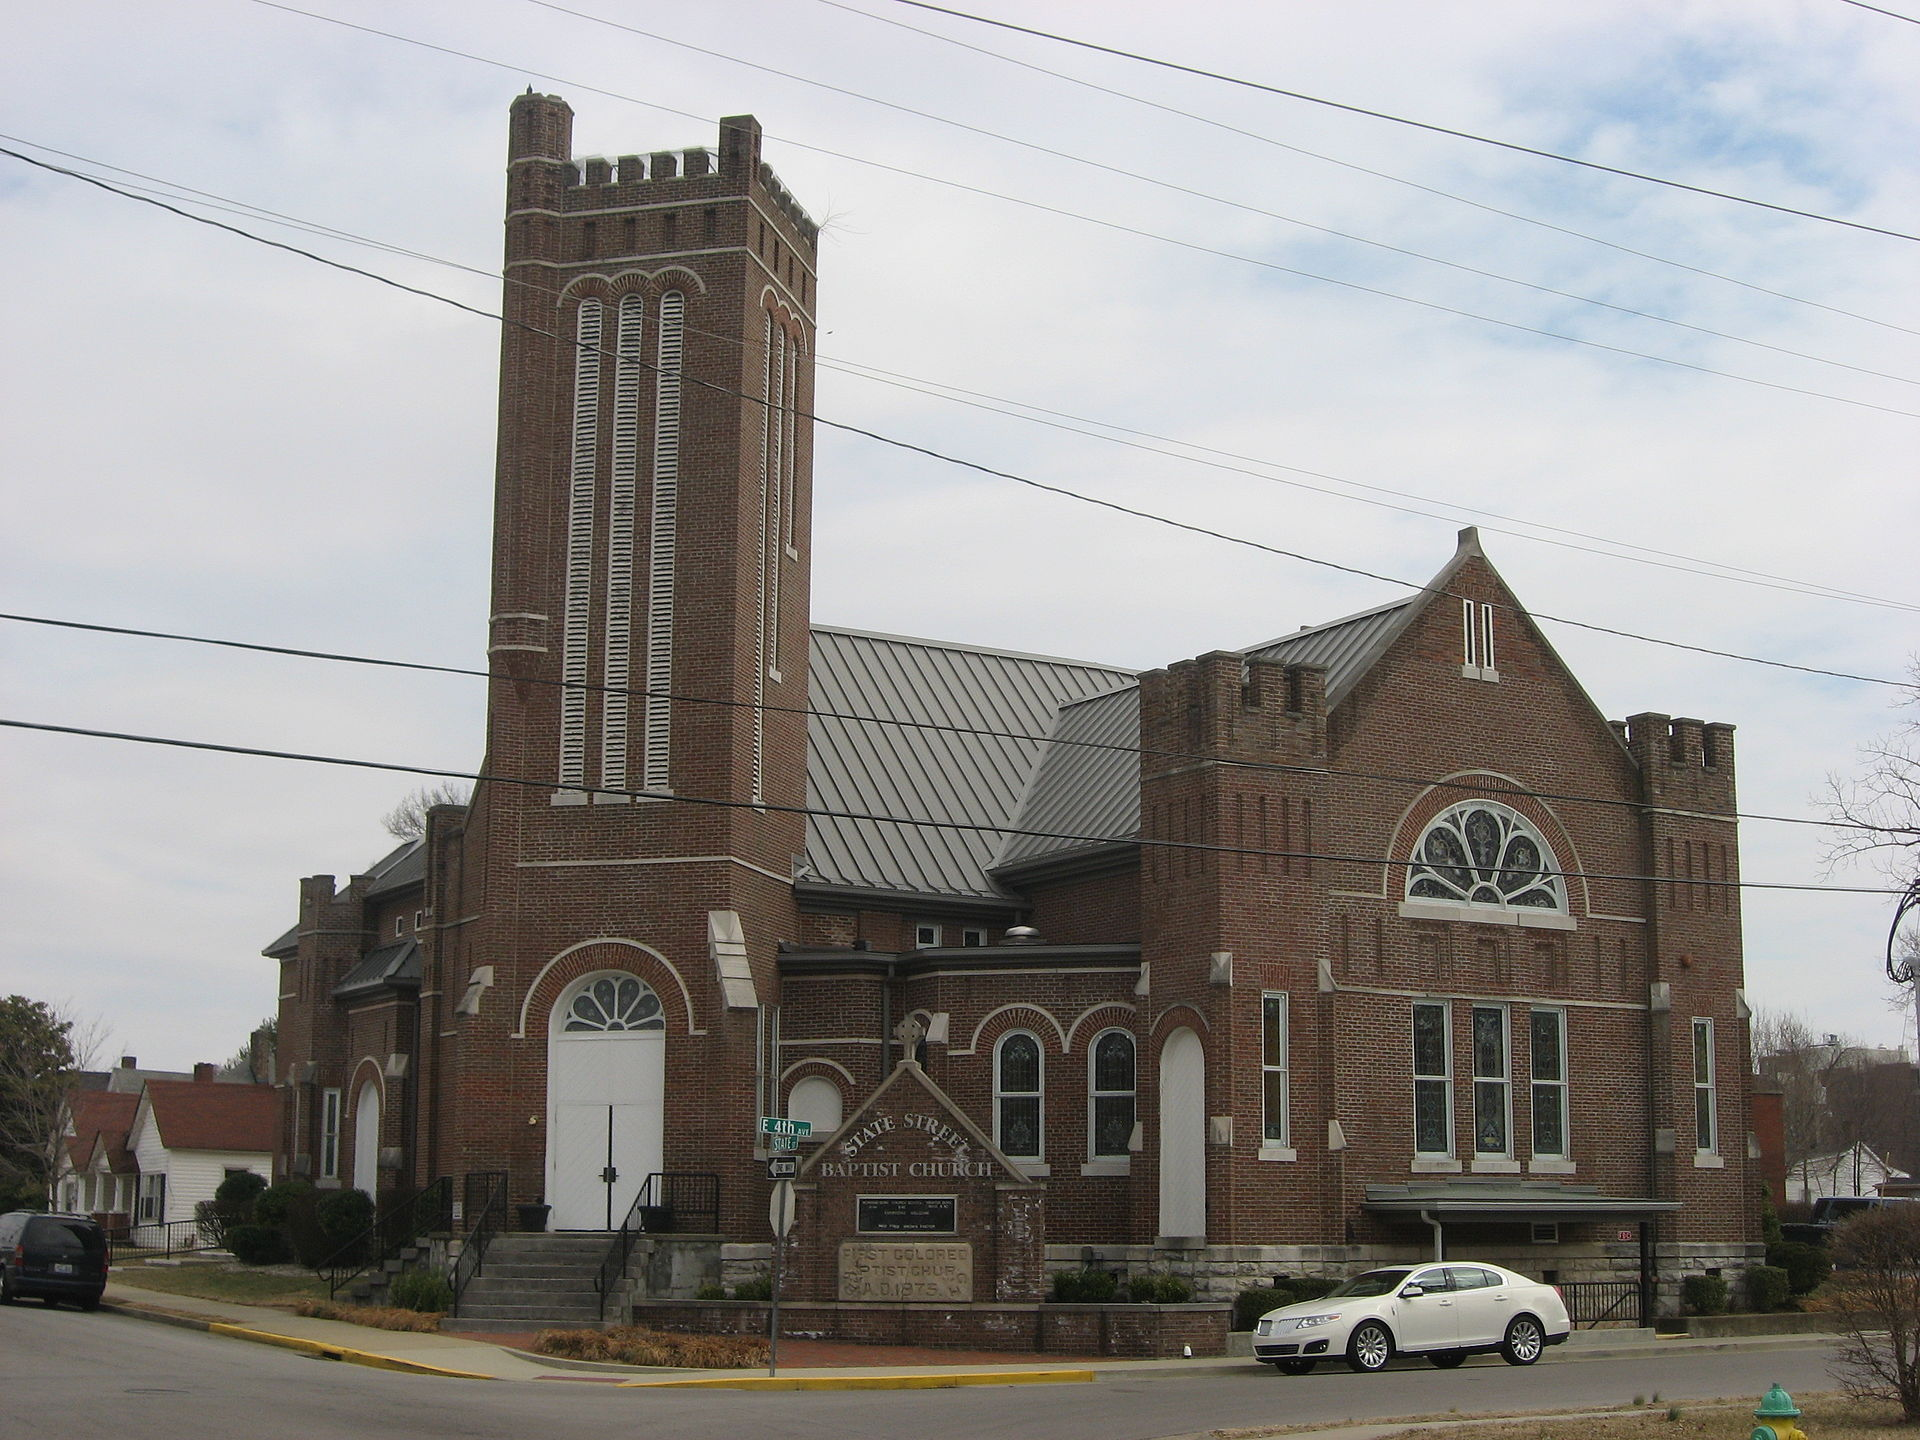 State Street Baptist Church today